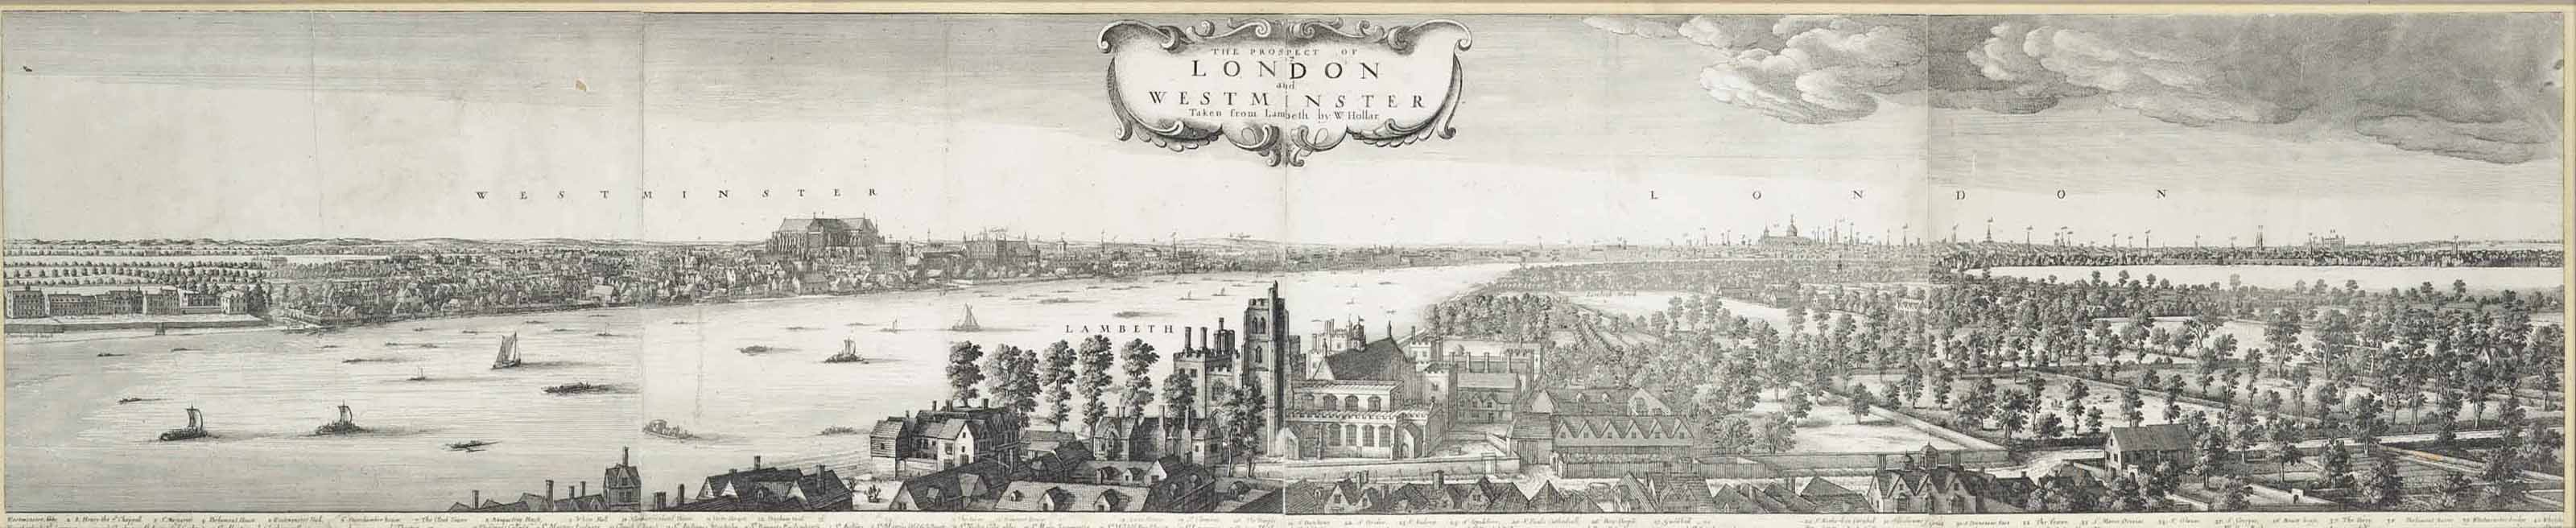 The Prospect of London and Westminster, taken from Lambeth (Pennington 1013)